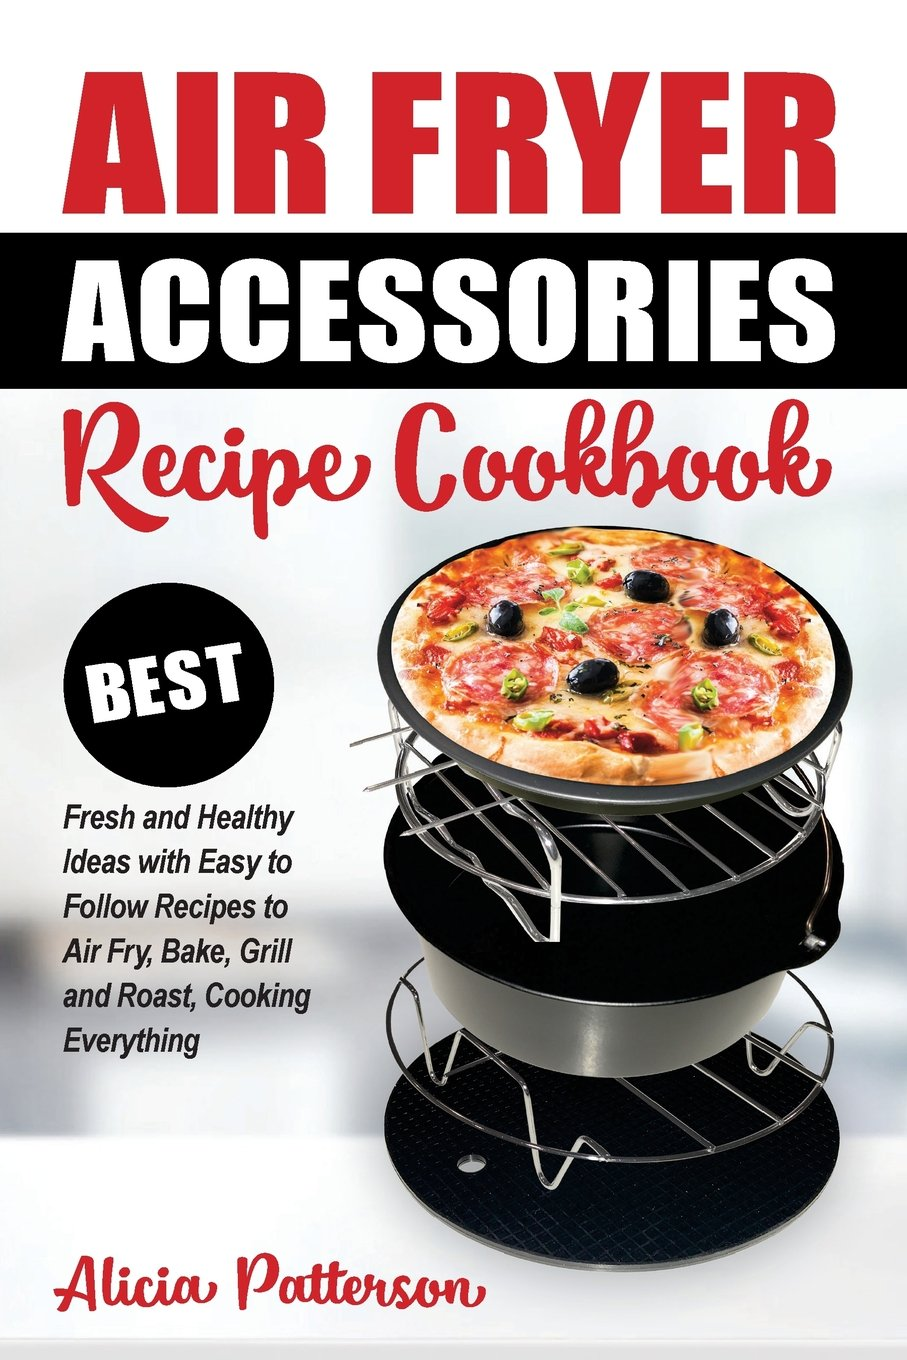 Air Fryer Accessories Recipe Cookbook: Best Fresh and Healthy Ideas with  Easy to Follow Recipes to Air Fry, Bake, Grill and Roast, Cooking Everything  (Best ...